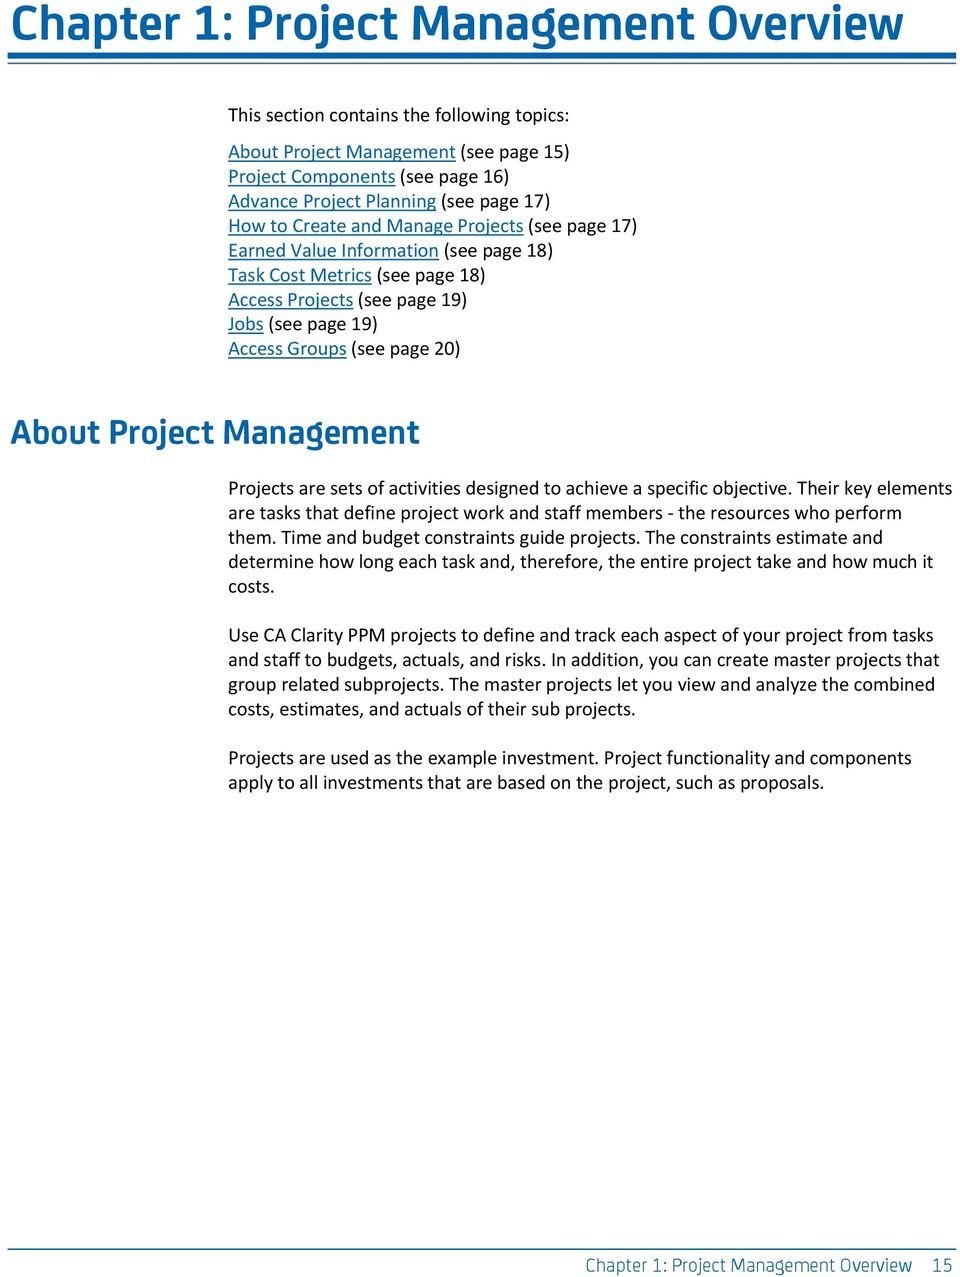 Project Management Projects are sets of activities designed to achieve a specific objective. Their key elements are tasks that define project work and staff members - the resources who perform them.